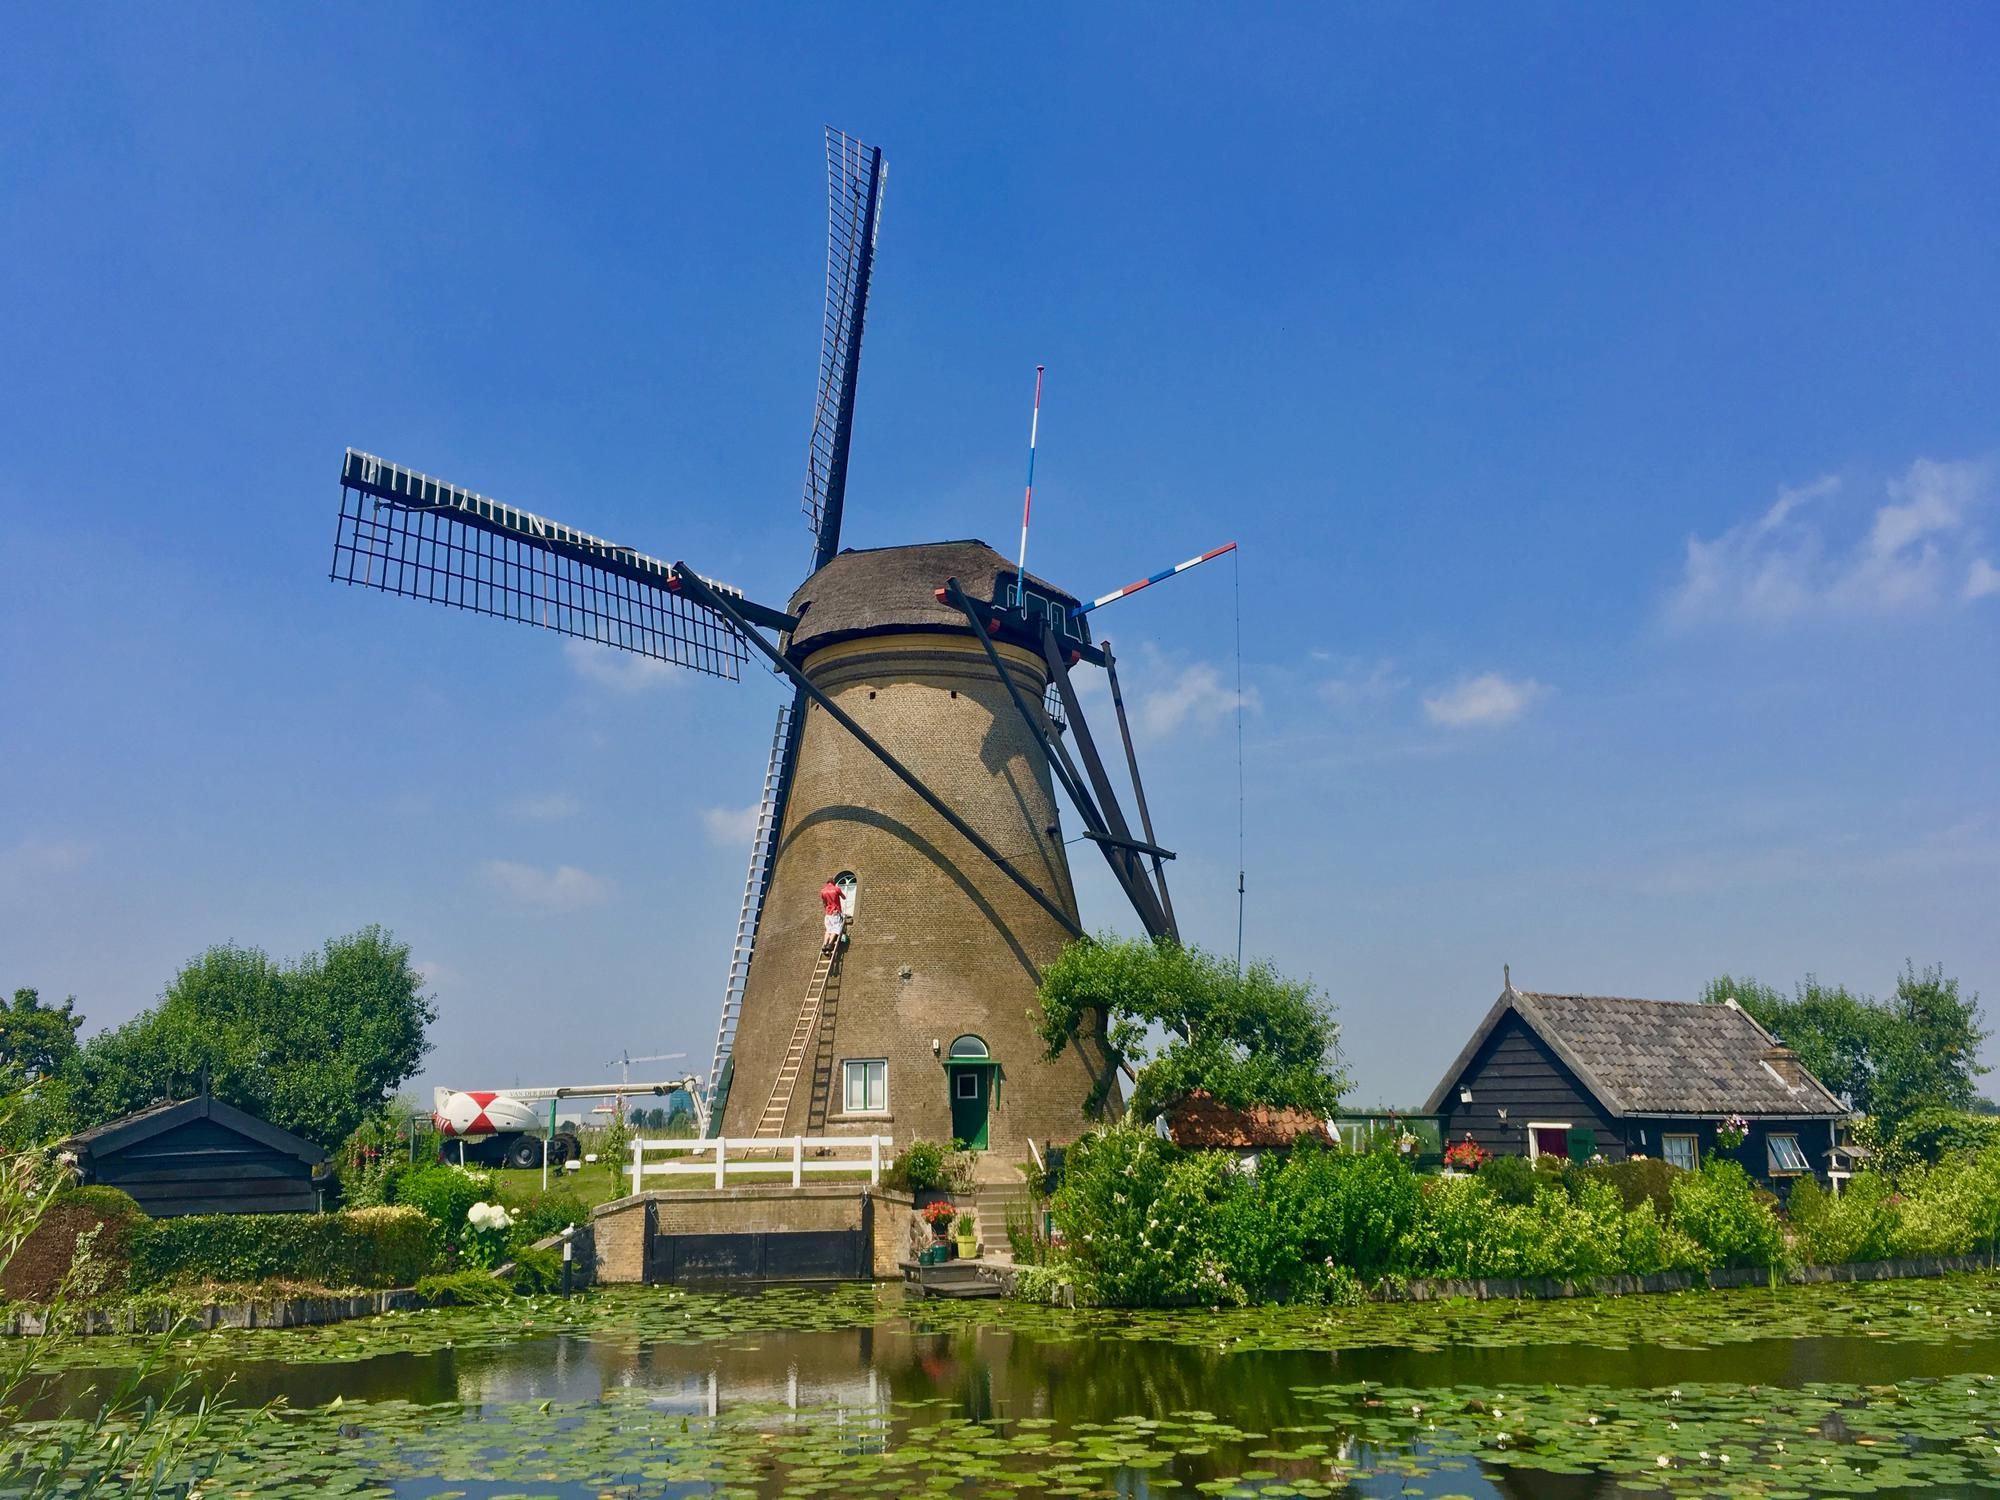 🇳🇱 Kinderdijk, Netherlands, july 2017.